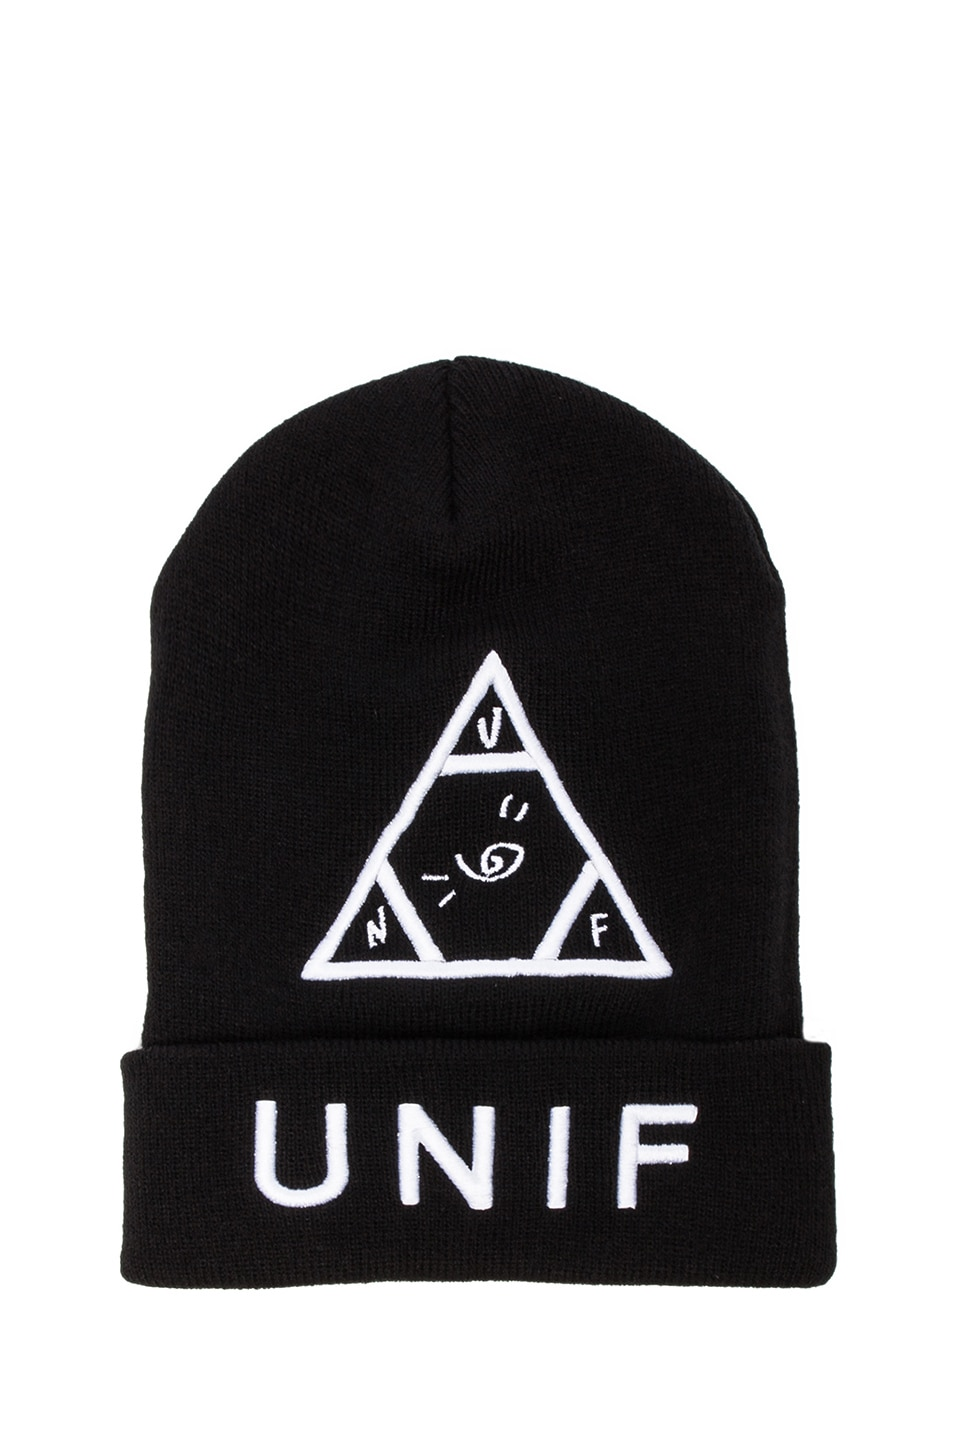 UNIF Logo Beanie in Black